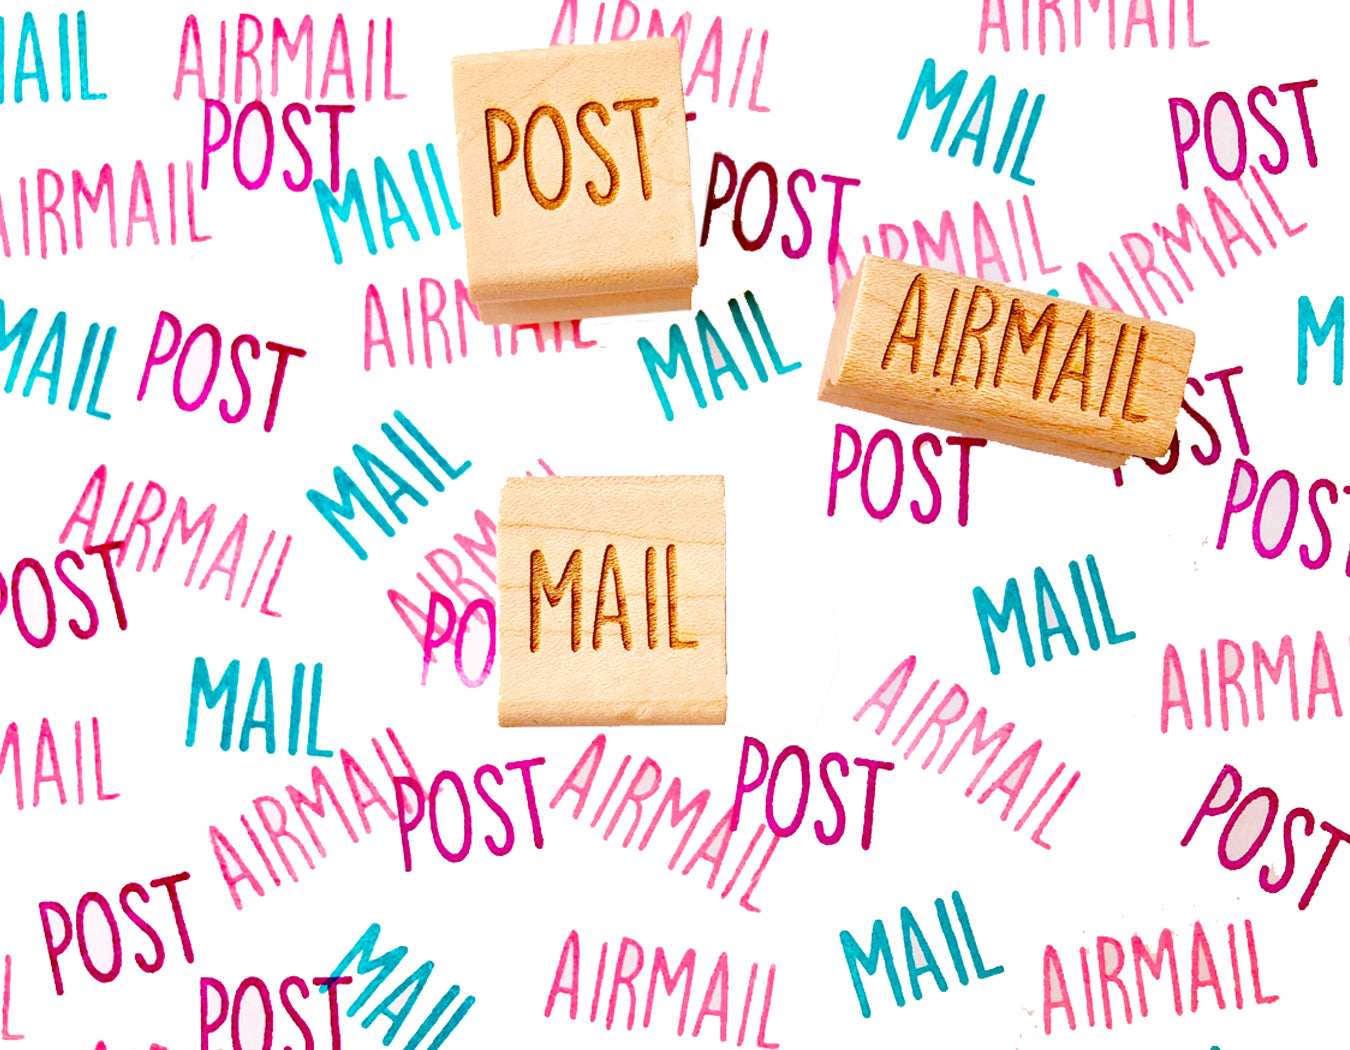 Snail Mail stamps | airmail mail post rubber stamps | modern calligraphy text stamps for mailing, shipping, business packaging TALK TO THE SUN